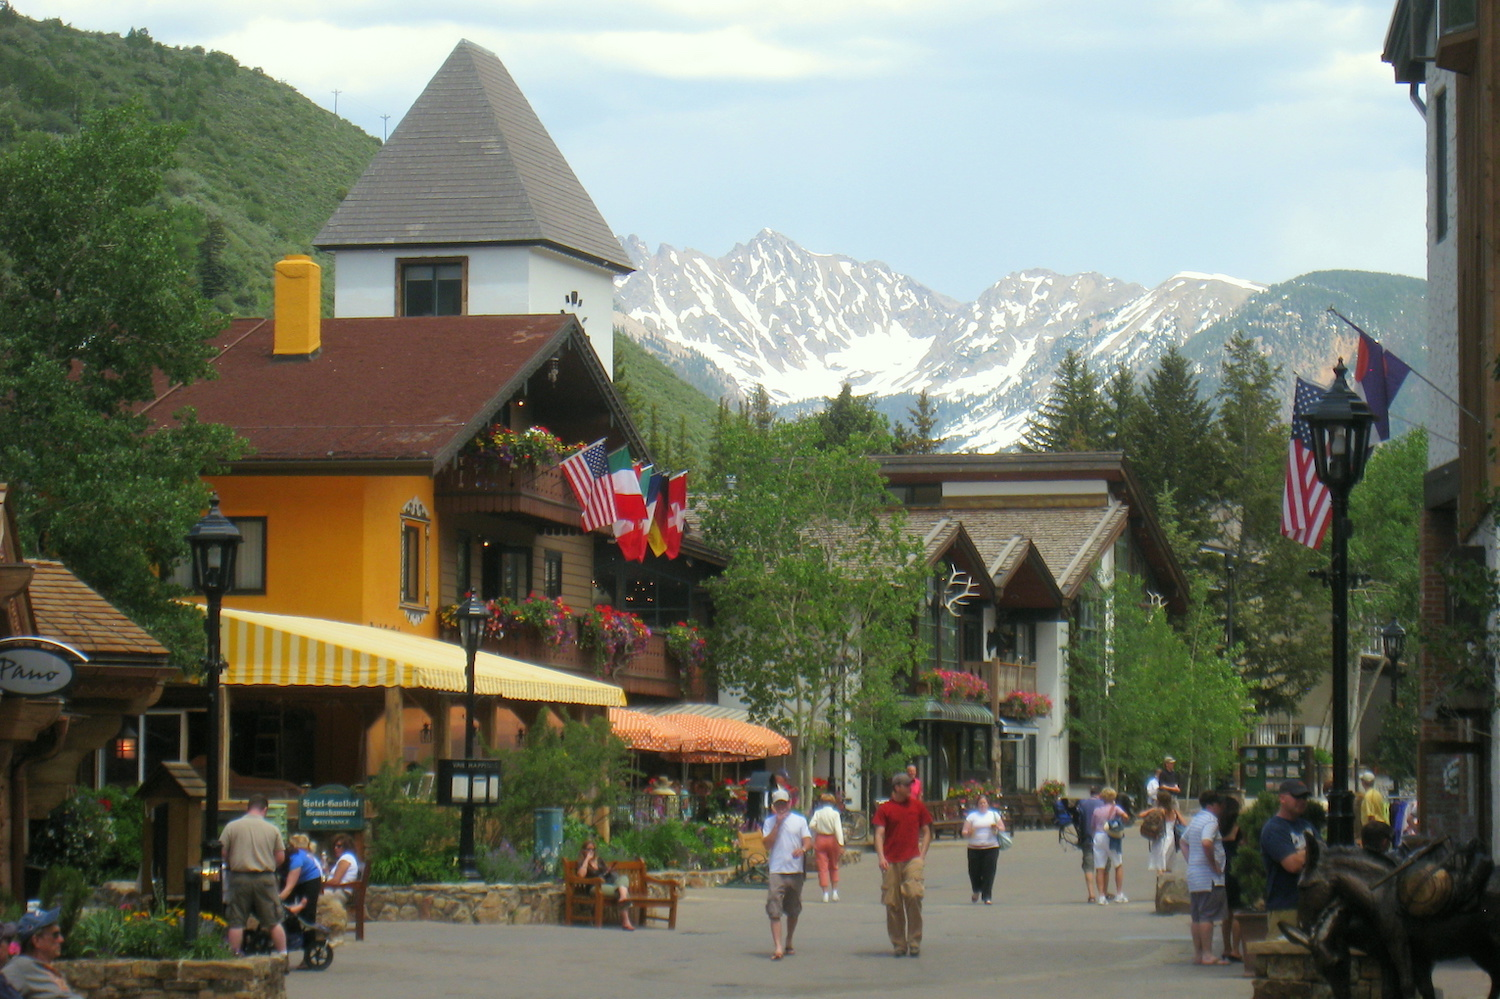 Summertime in Vail village